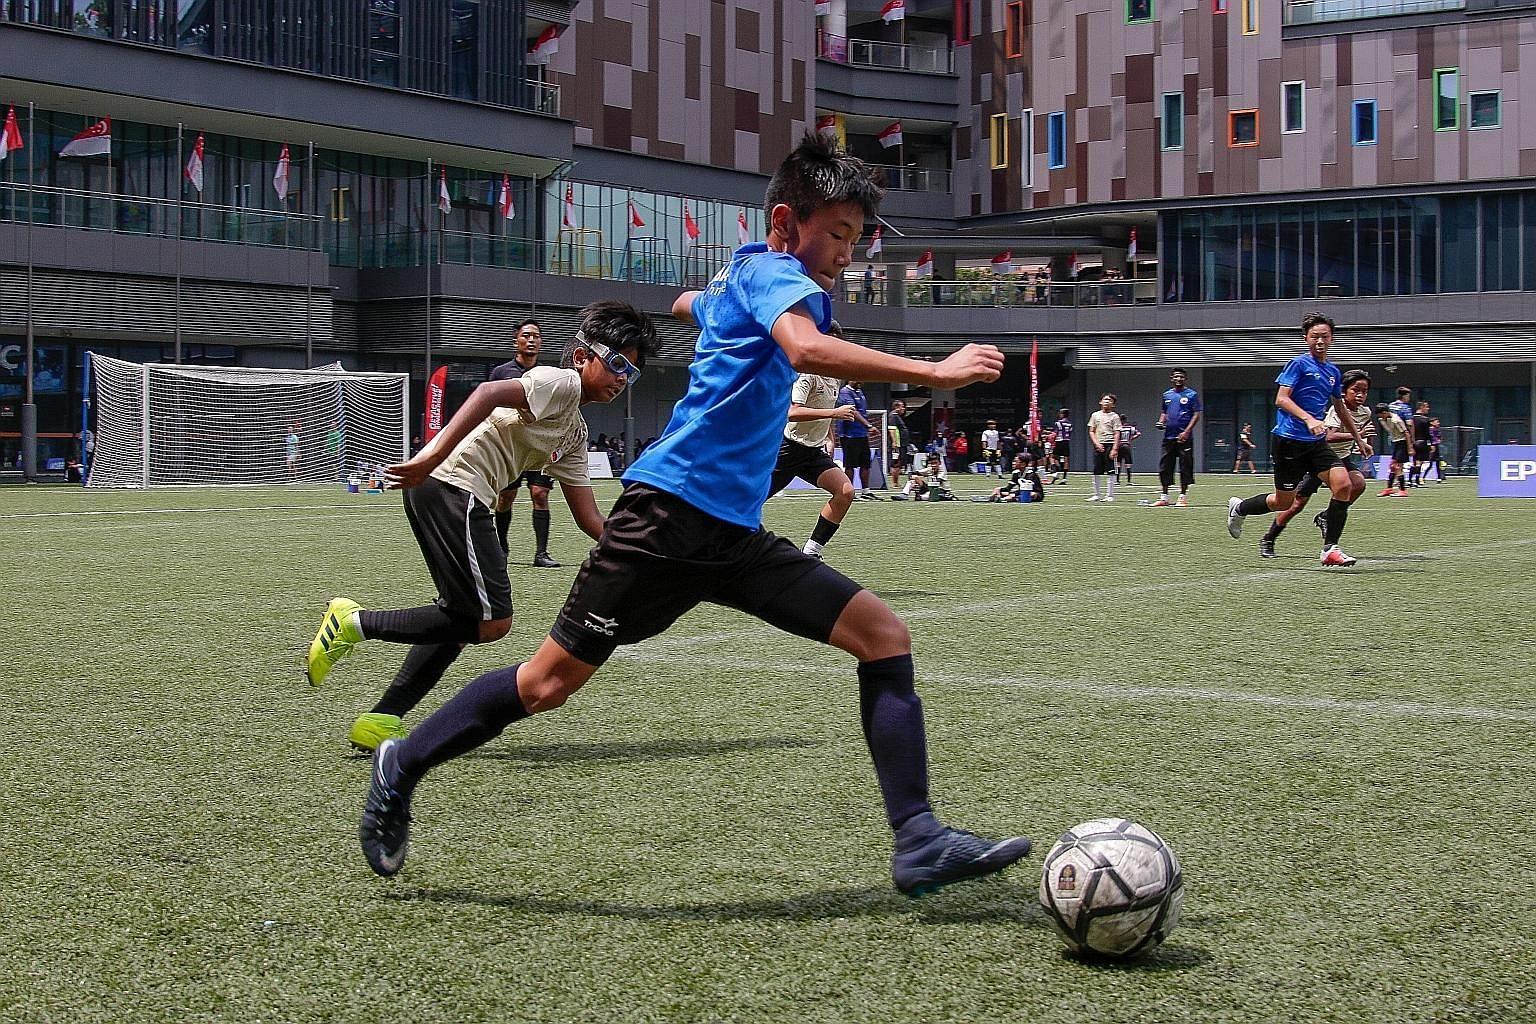 ActiveSG Football Academy Serangoon Development Centre's Under-13 side (in blue) taking on AFA Toa Payoh DC at Our Tampines Hub yesterday in the Epson Youth Challenge.